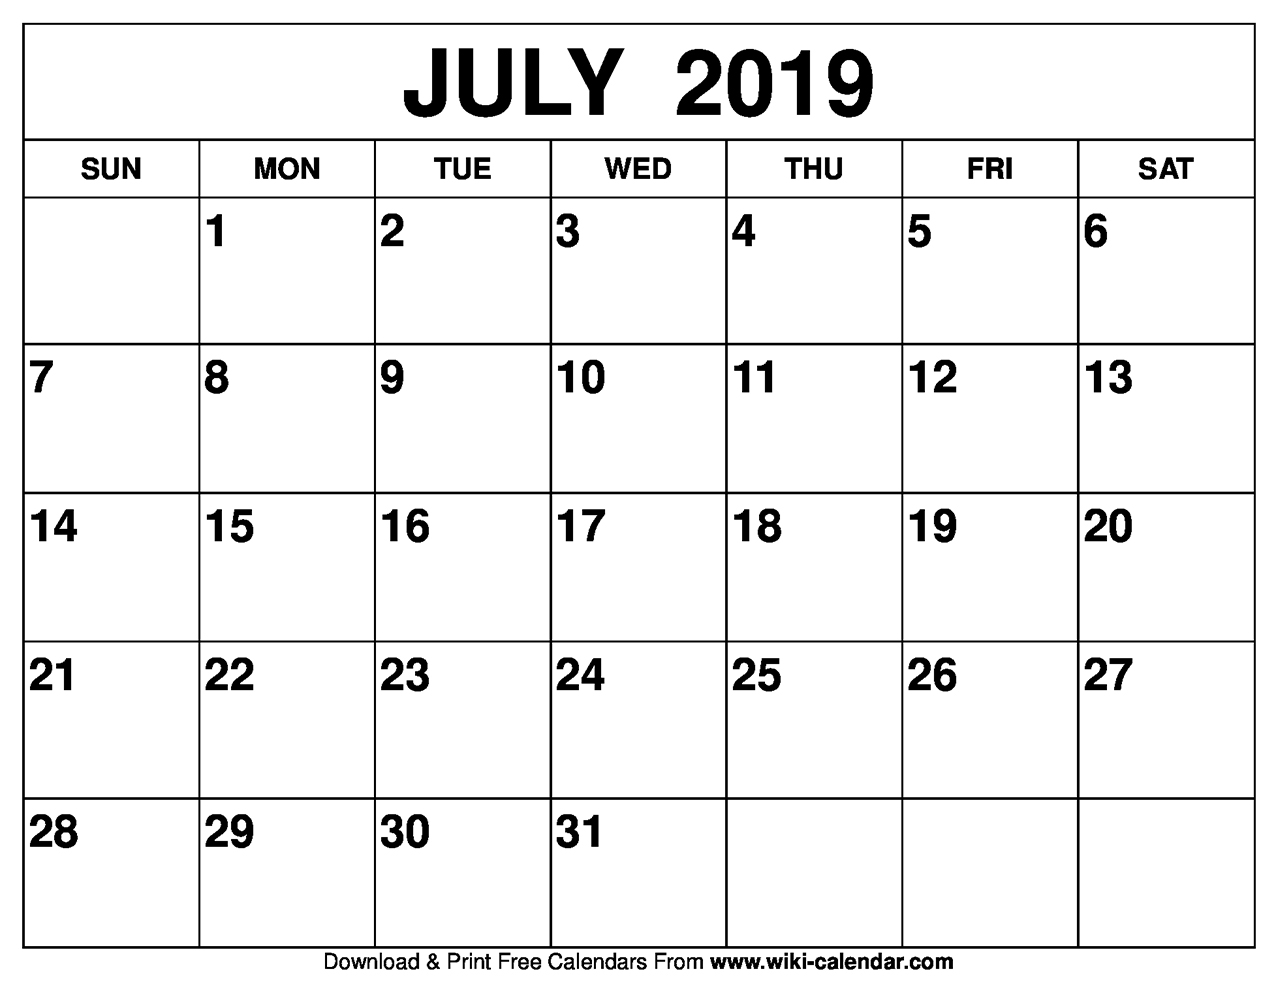 free printable calendar july 2019 - Hizir kaptanband co